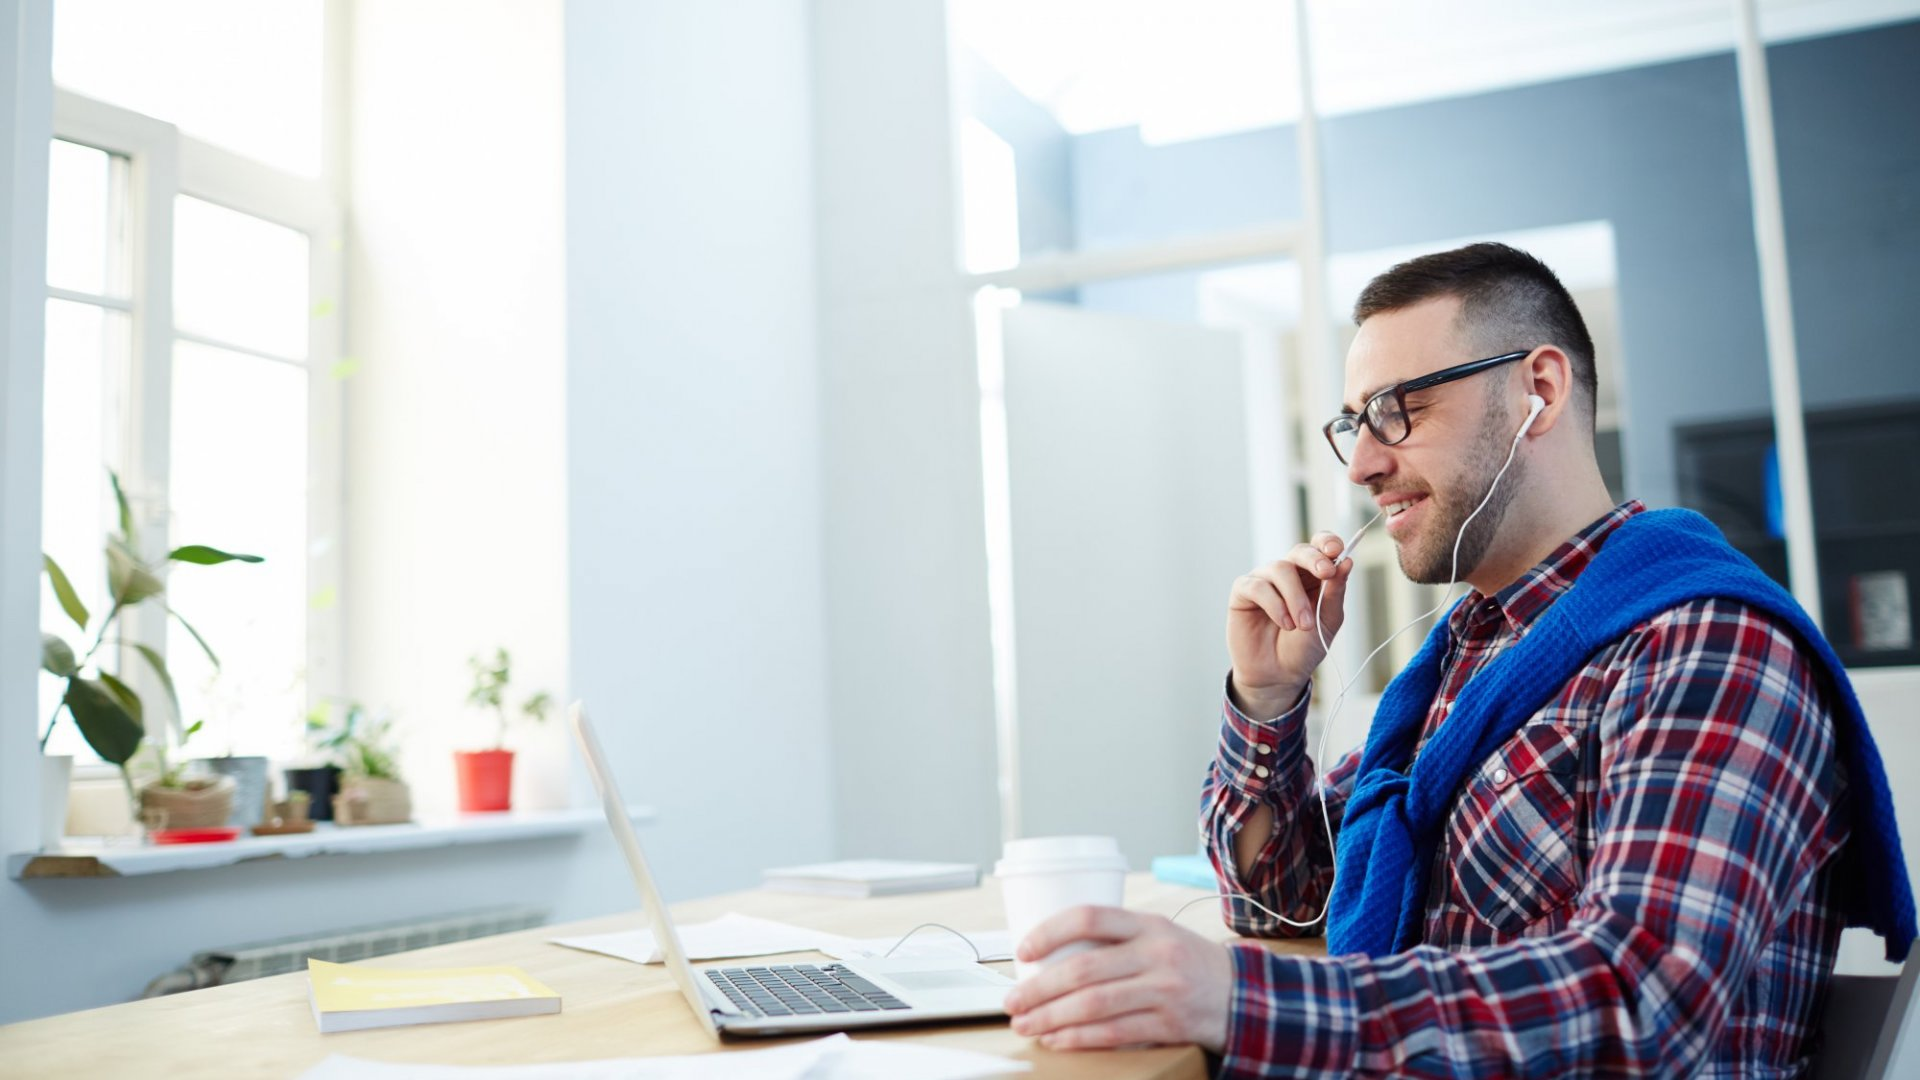 5 Tips to Better Engage Your Remote Employees Today